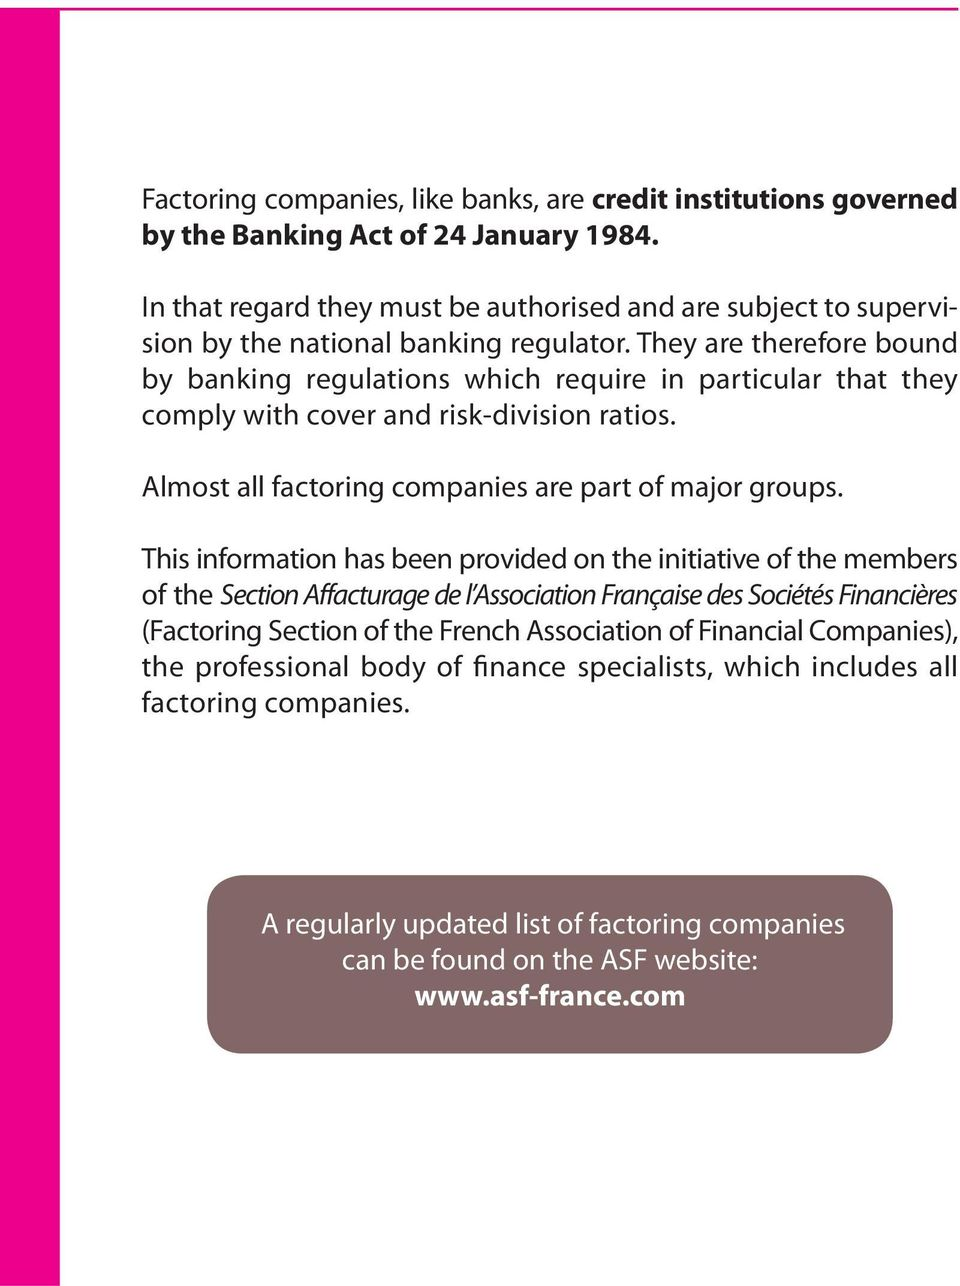 They are therefore bound by banking regulations which require in particular that they comply with cover and risk-division ratios. Almost all factoring companies are part of major groups.